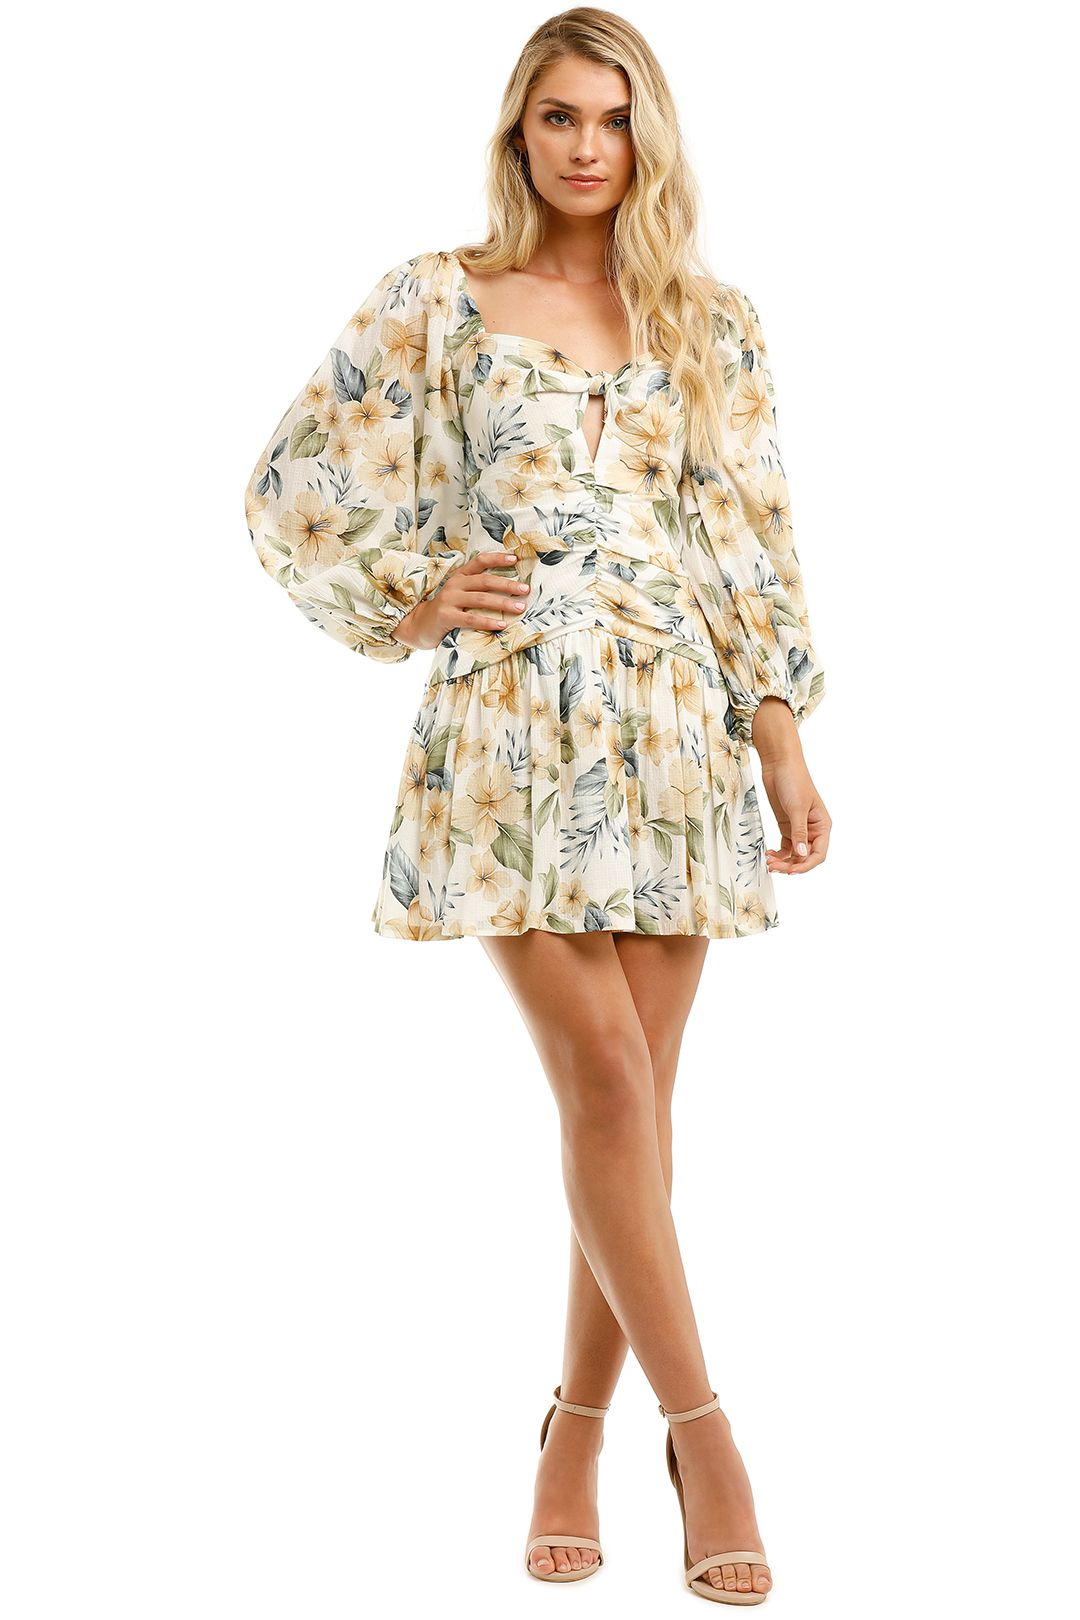 Bec-and-Bridge-Fleurette-Mini-Dress-Floral-Front